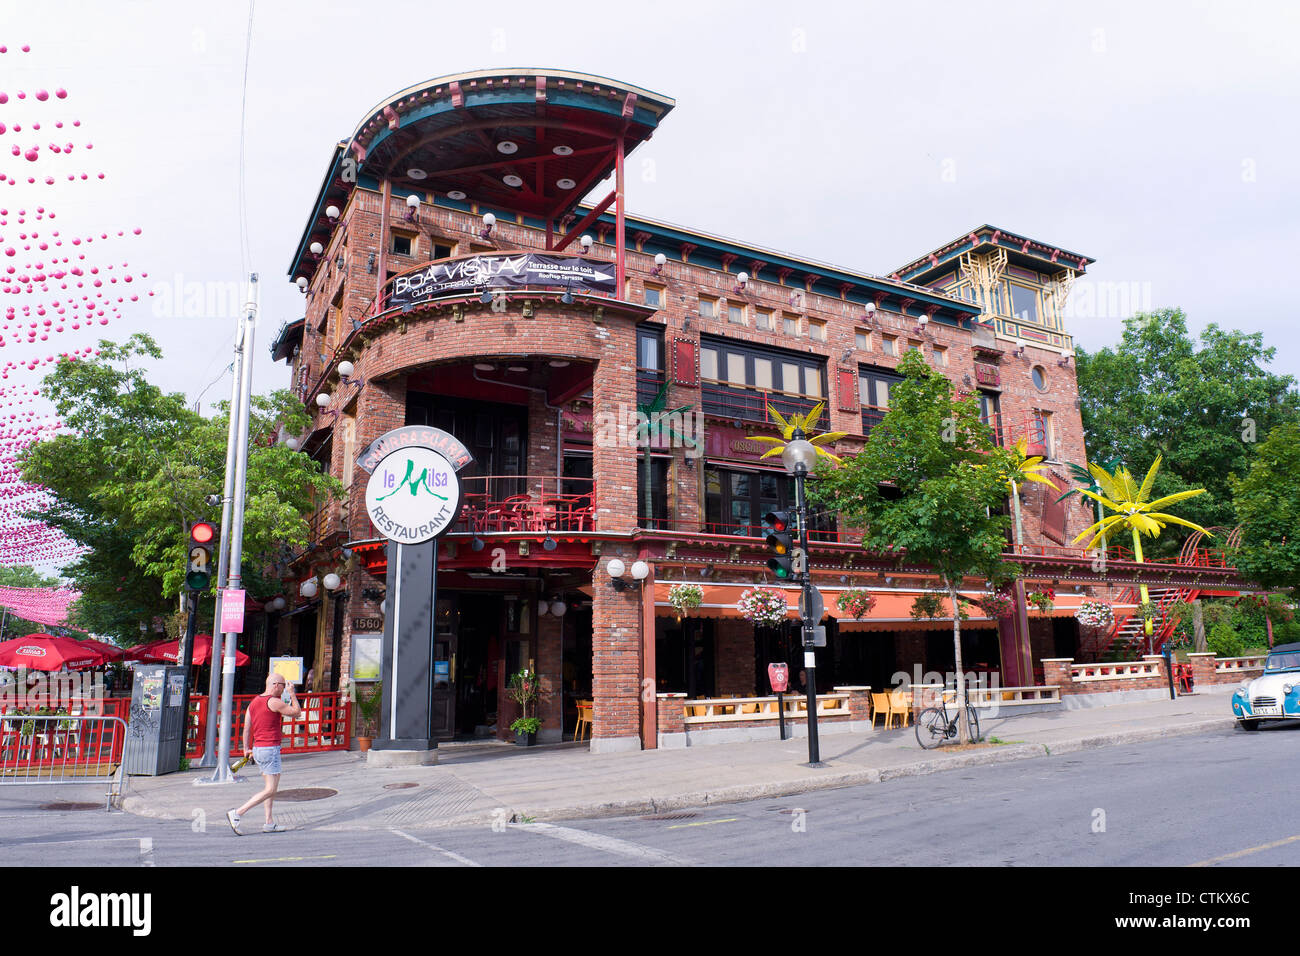 'Le Milsa' restaurant, Gay village, Montreal, province of Quebec, Canada. - Stock Image